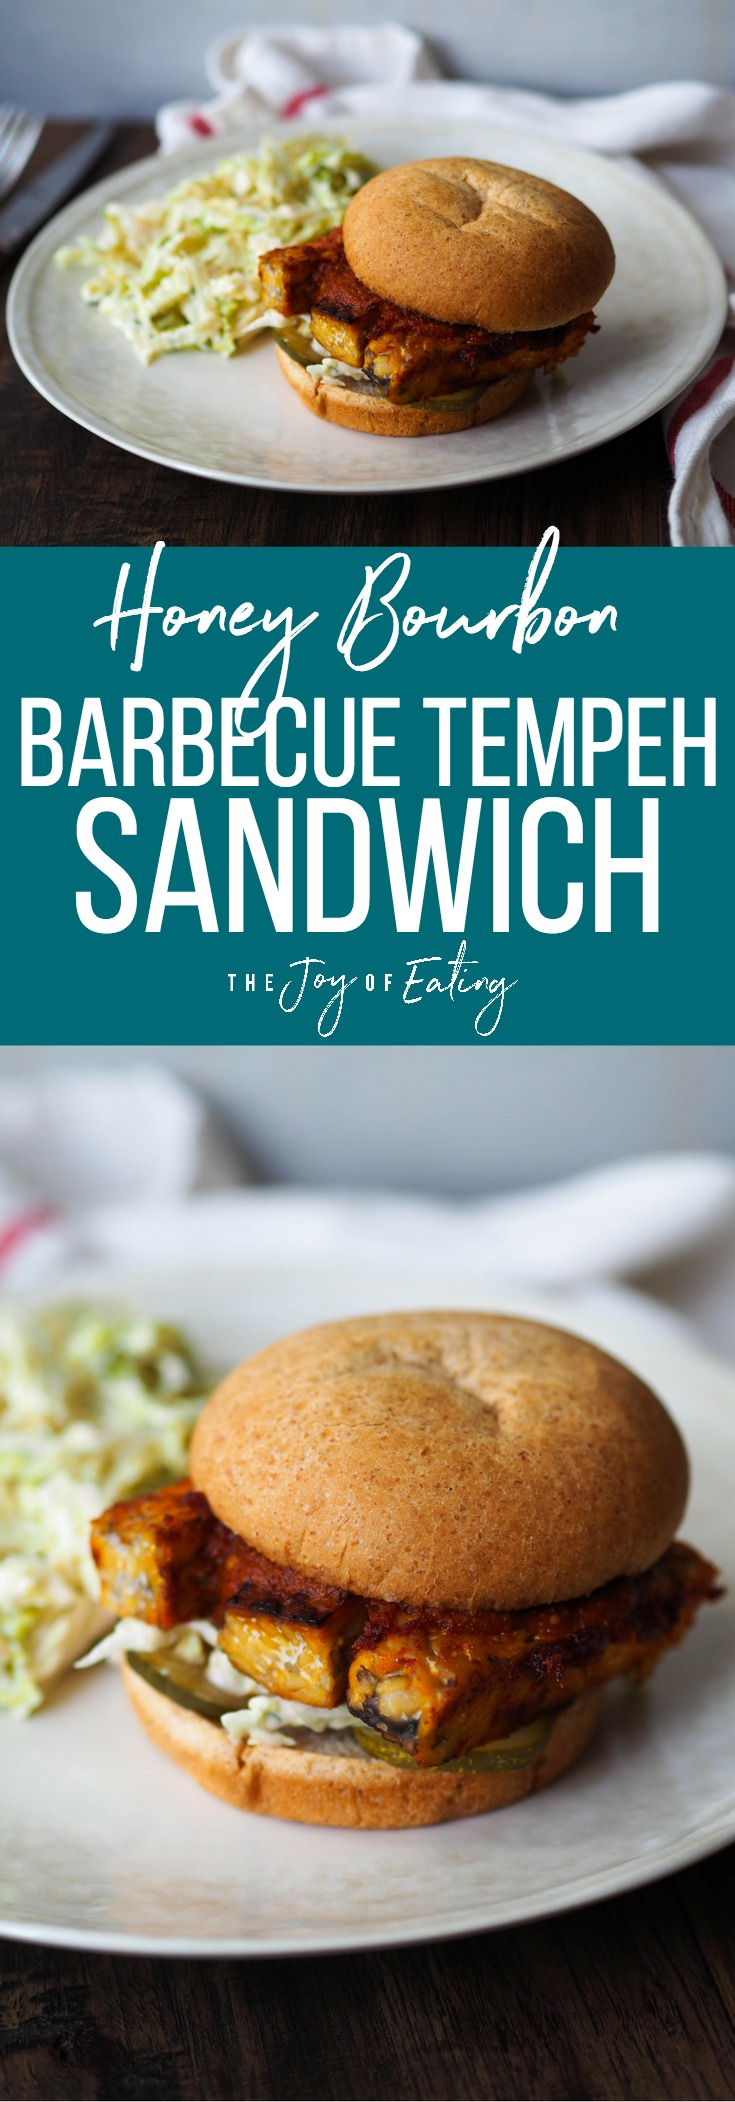 Honey bourbon barbecue tempeh! Try this vegan spin on the barbecue sandwich, made with a tangy, lower sugar honey bourbon barbecue sauce! #barbecue #vegan #vegetarian #healthyrecipe #meatlessmonday #southern #sandwich